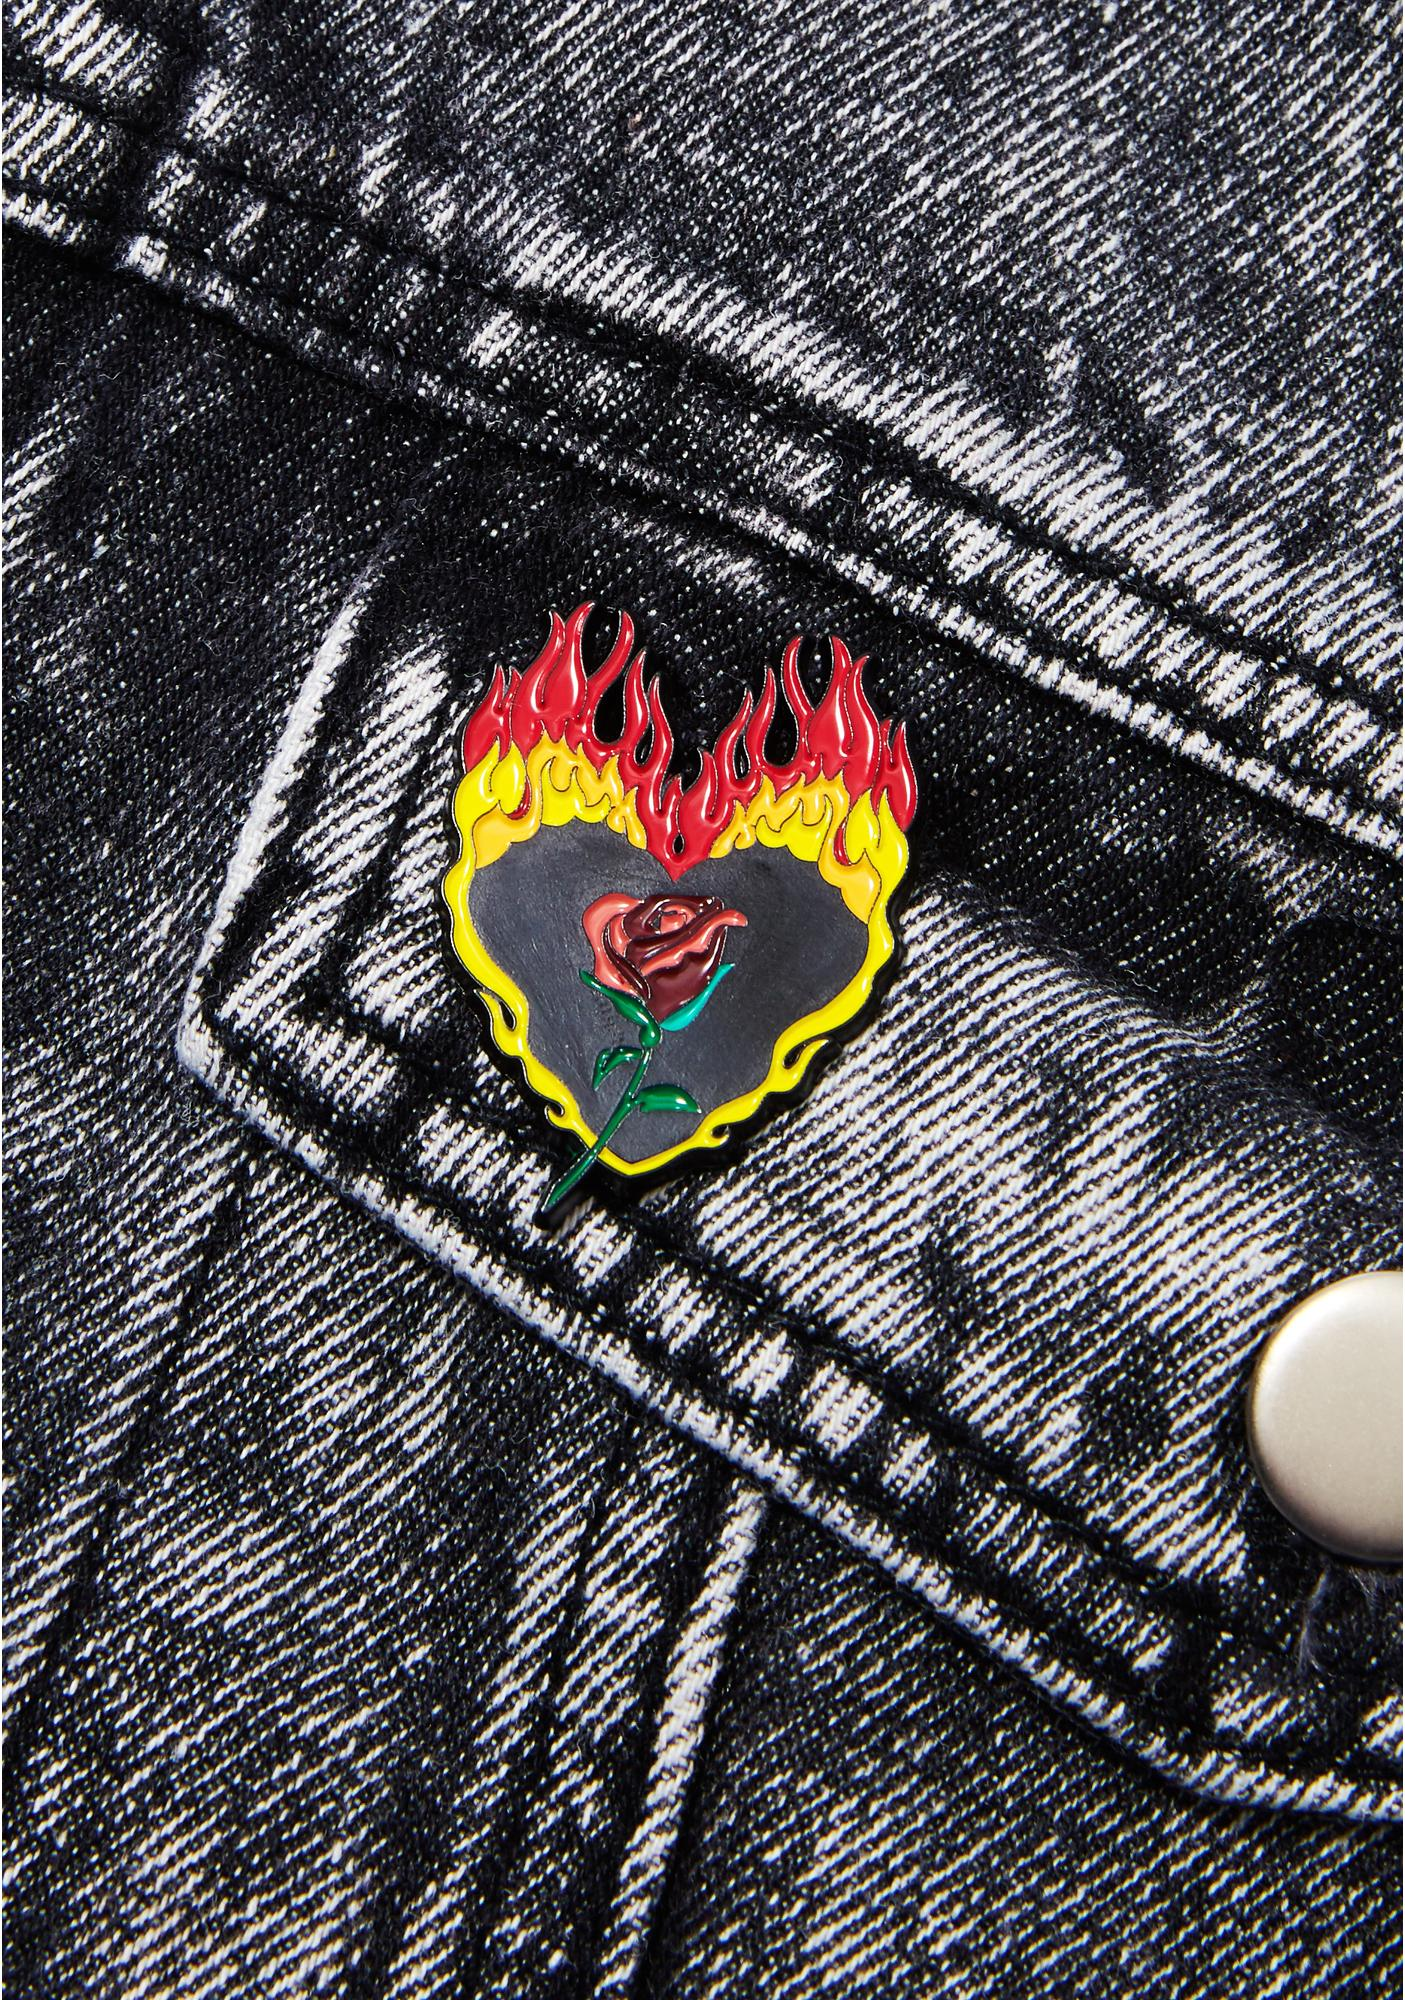 Laser Kitten Flaming Rose Pin